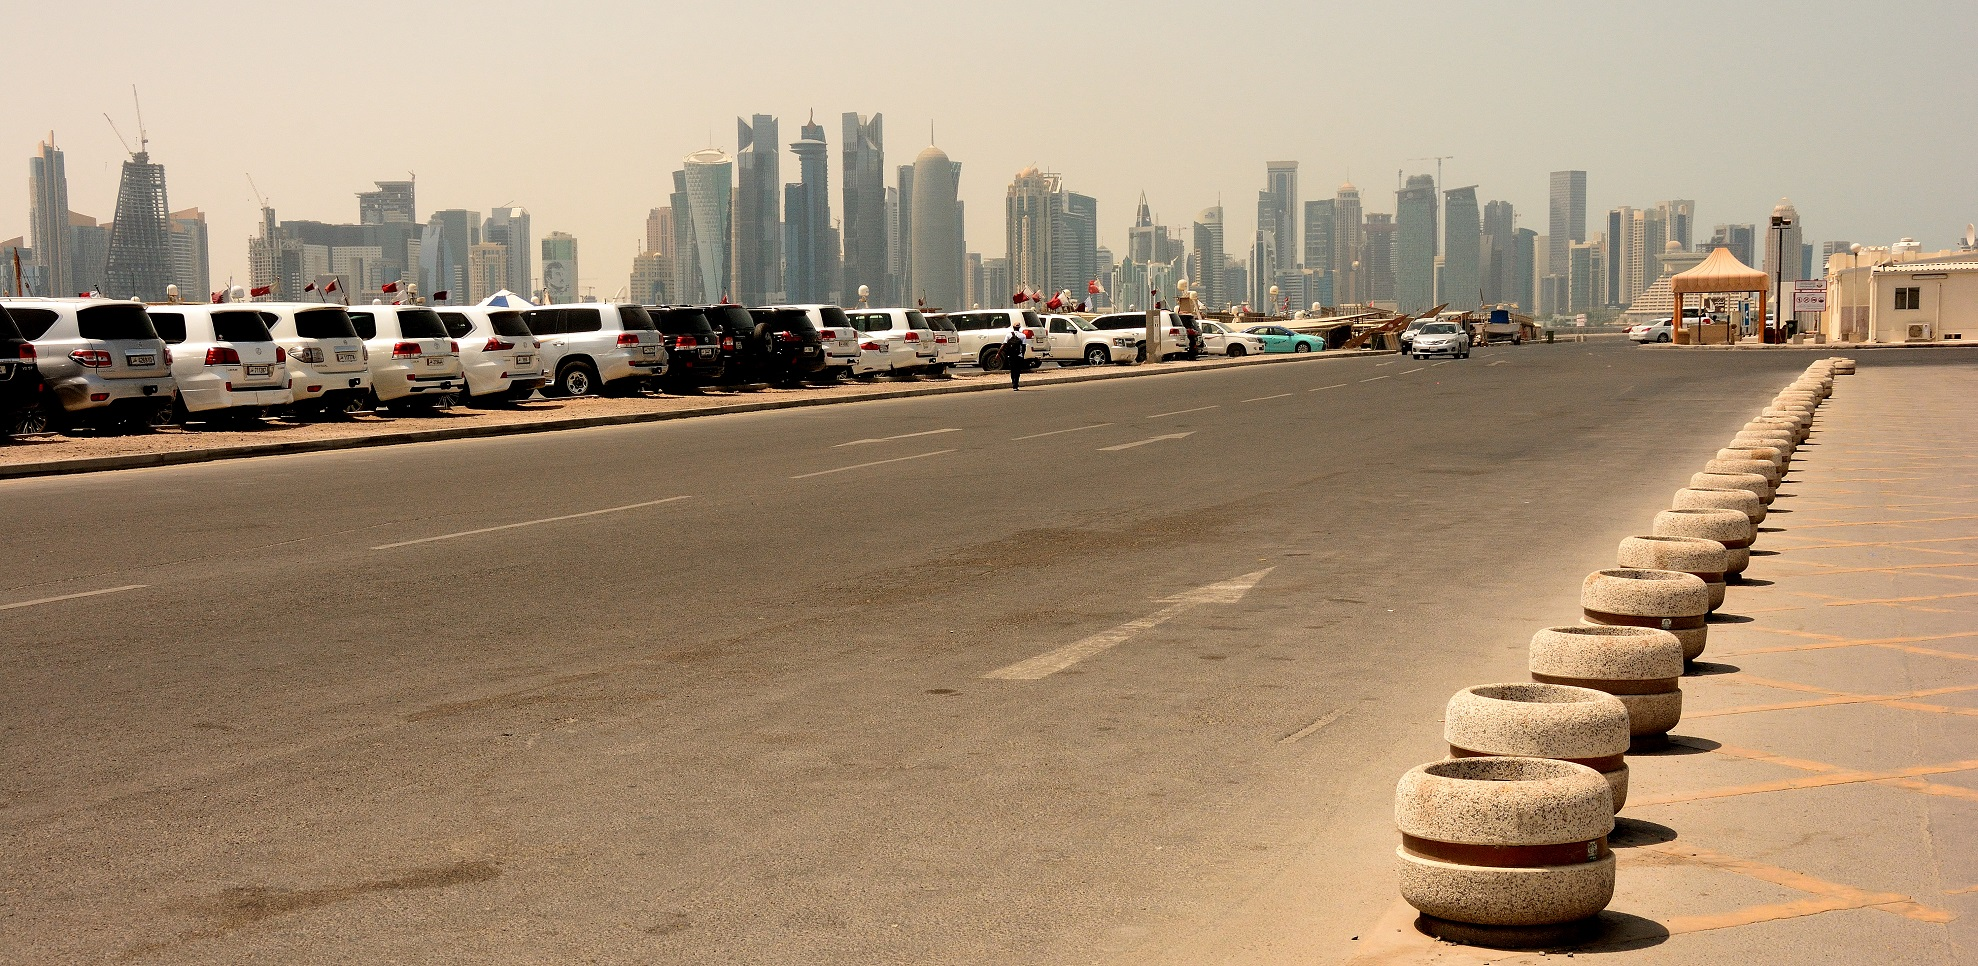 Road on an artificial island with the skycrapers of Doha in the background